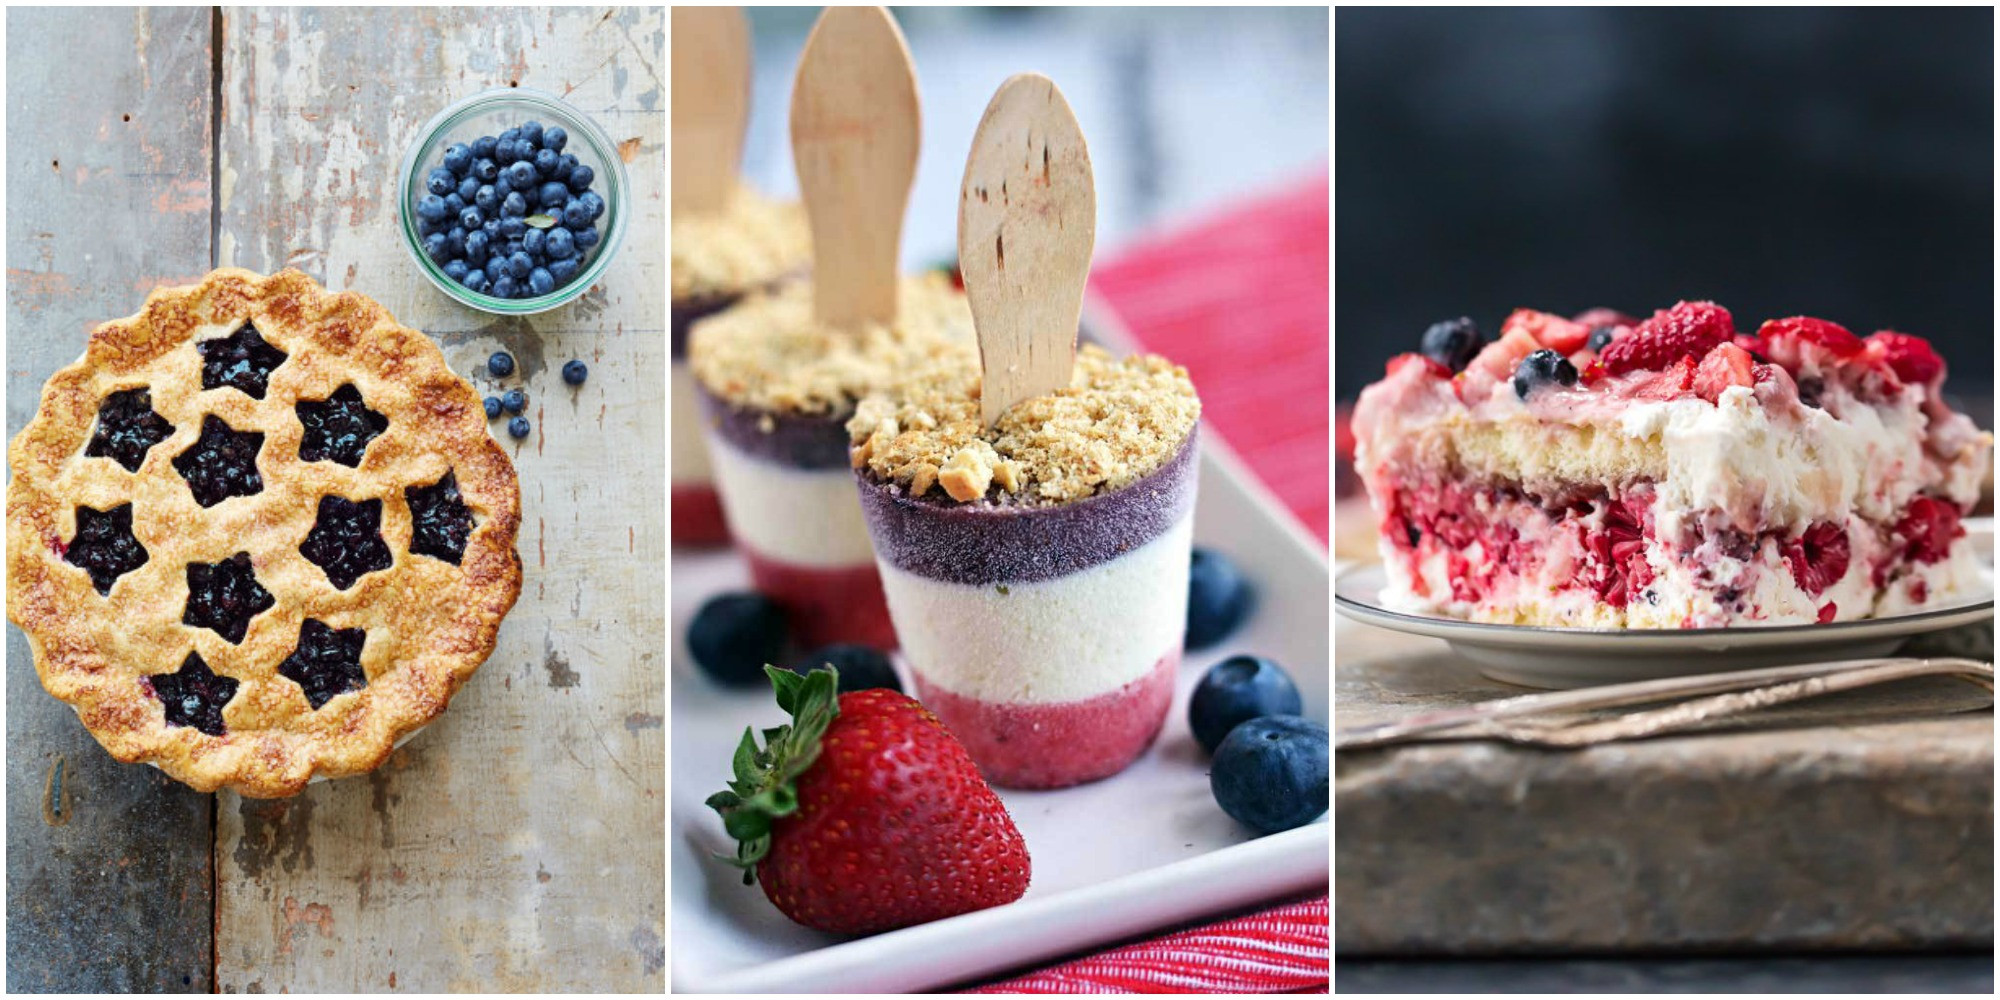 Memorial Day Desserts Ideas  20 Memorial Day Desserts Treats for a Memorial Day Party